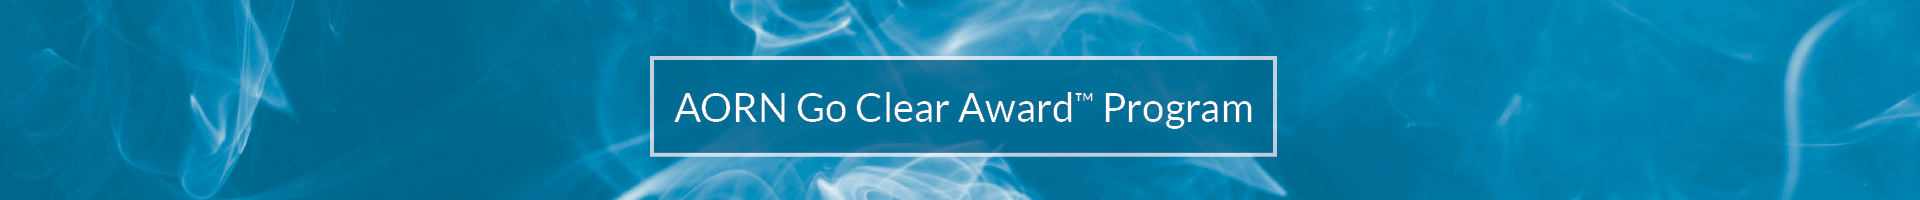 AORN Go Clear Surgical Smoke-Free Recognition Program